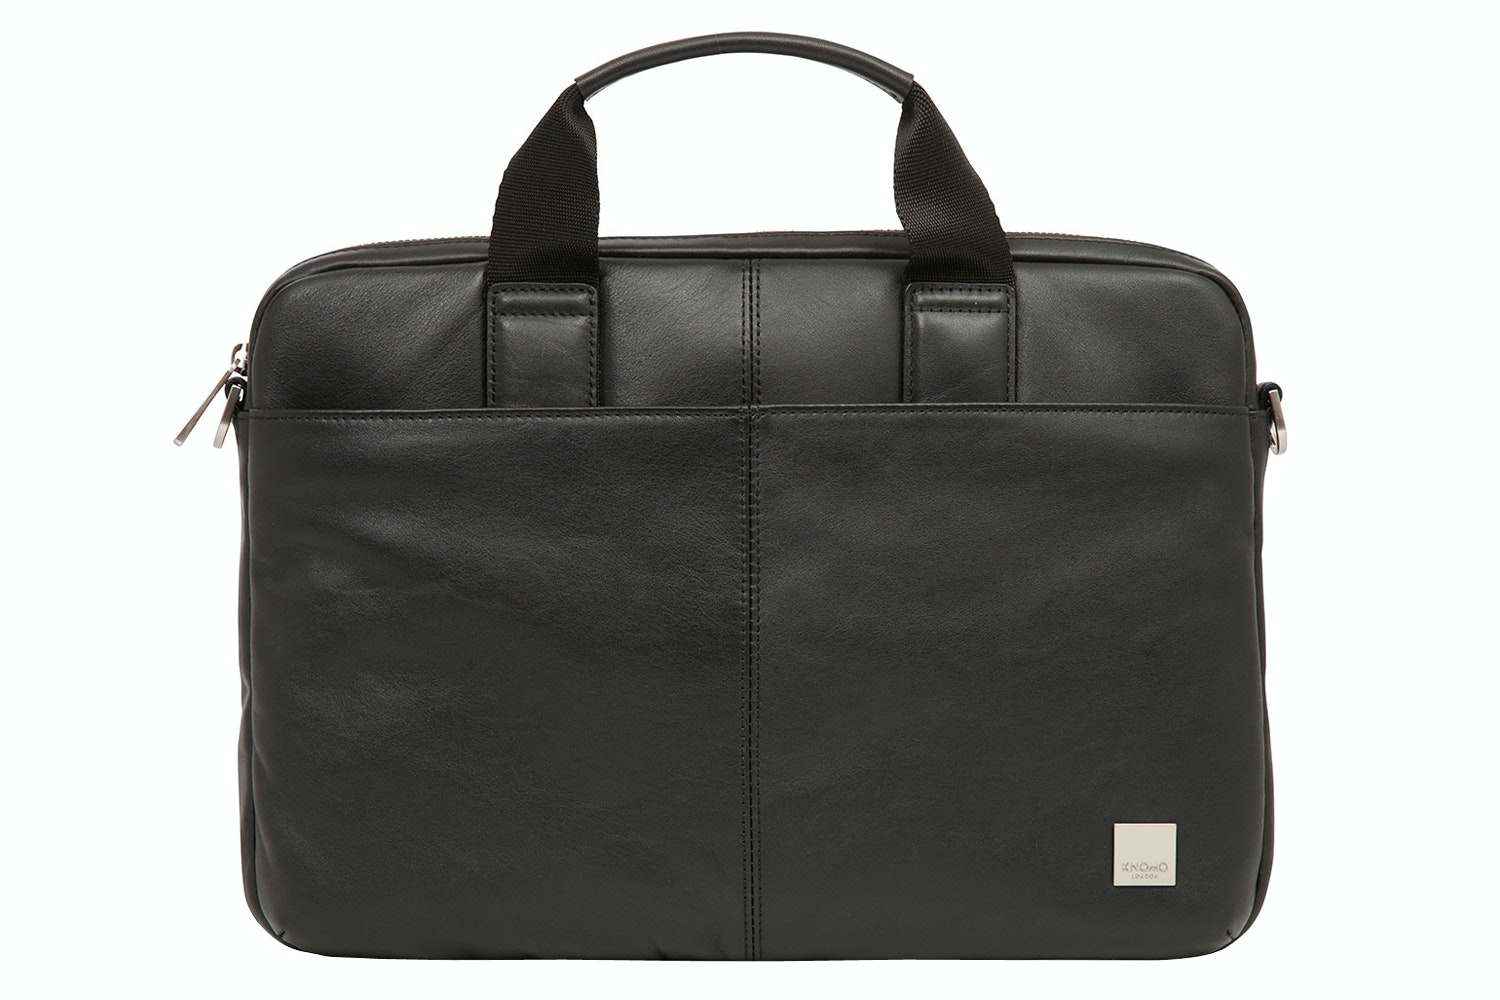 Knomo Stanford Full Leather Slim Laptop Carrier 13"